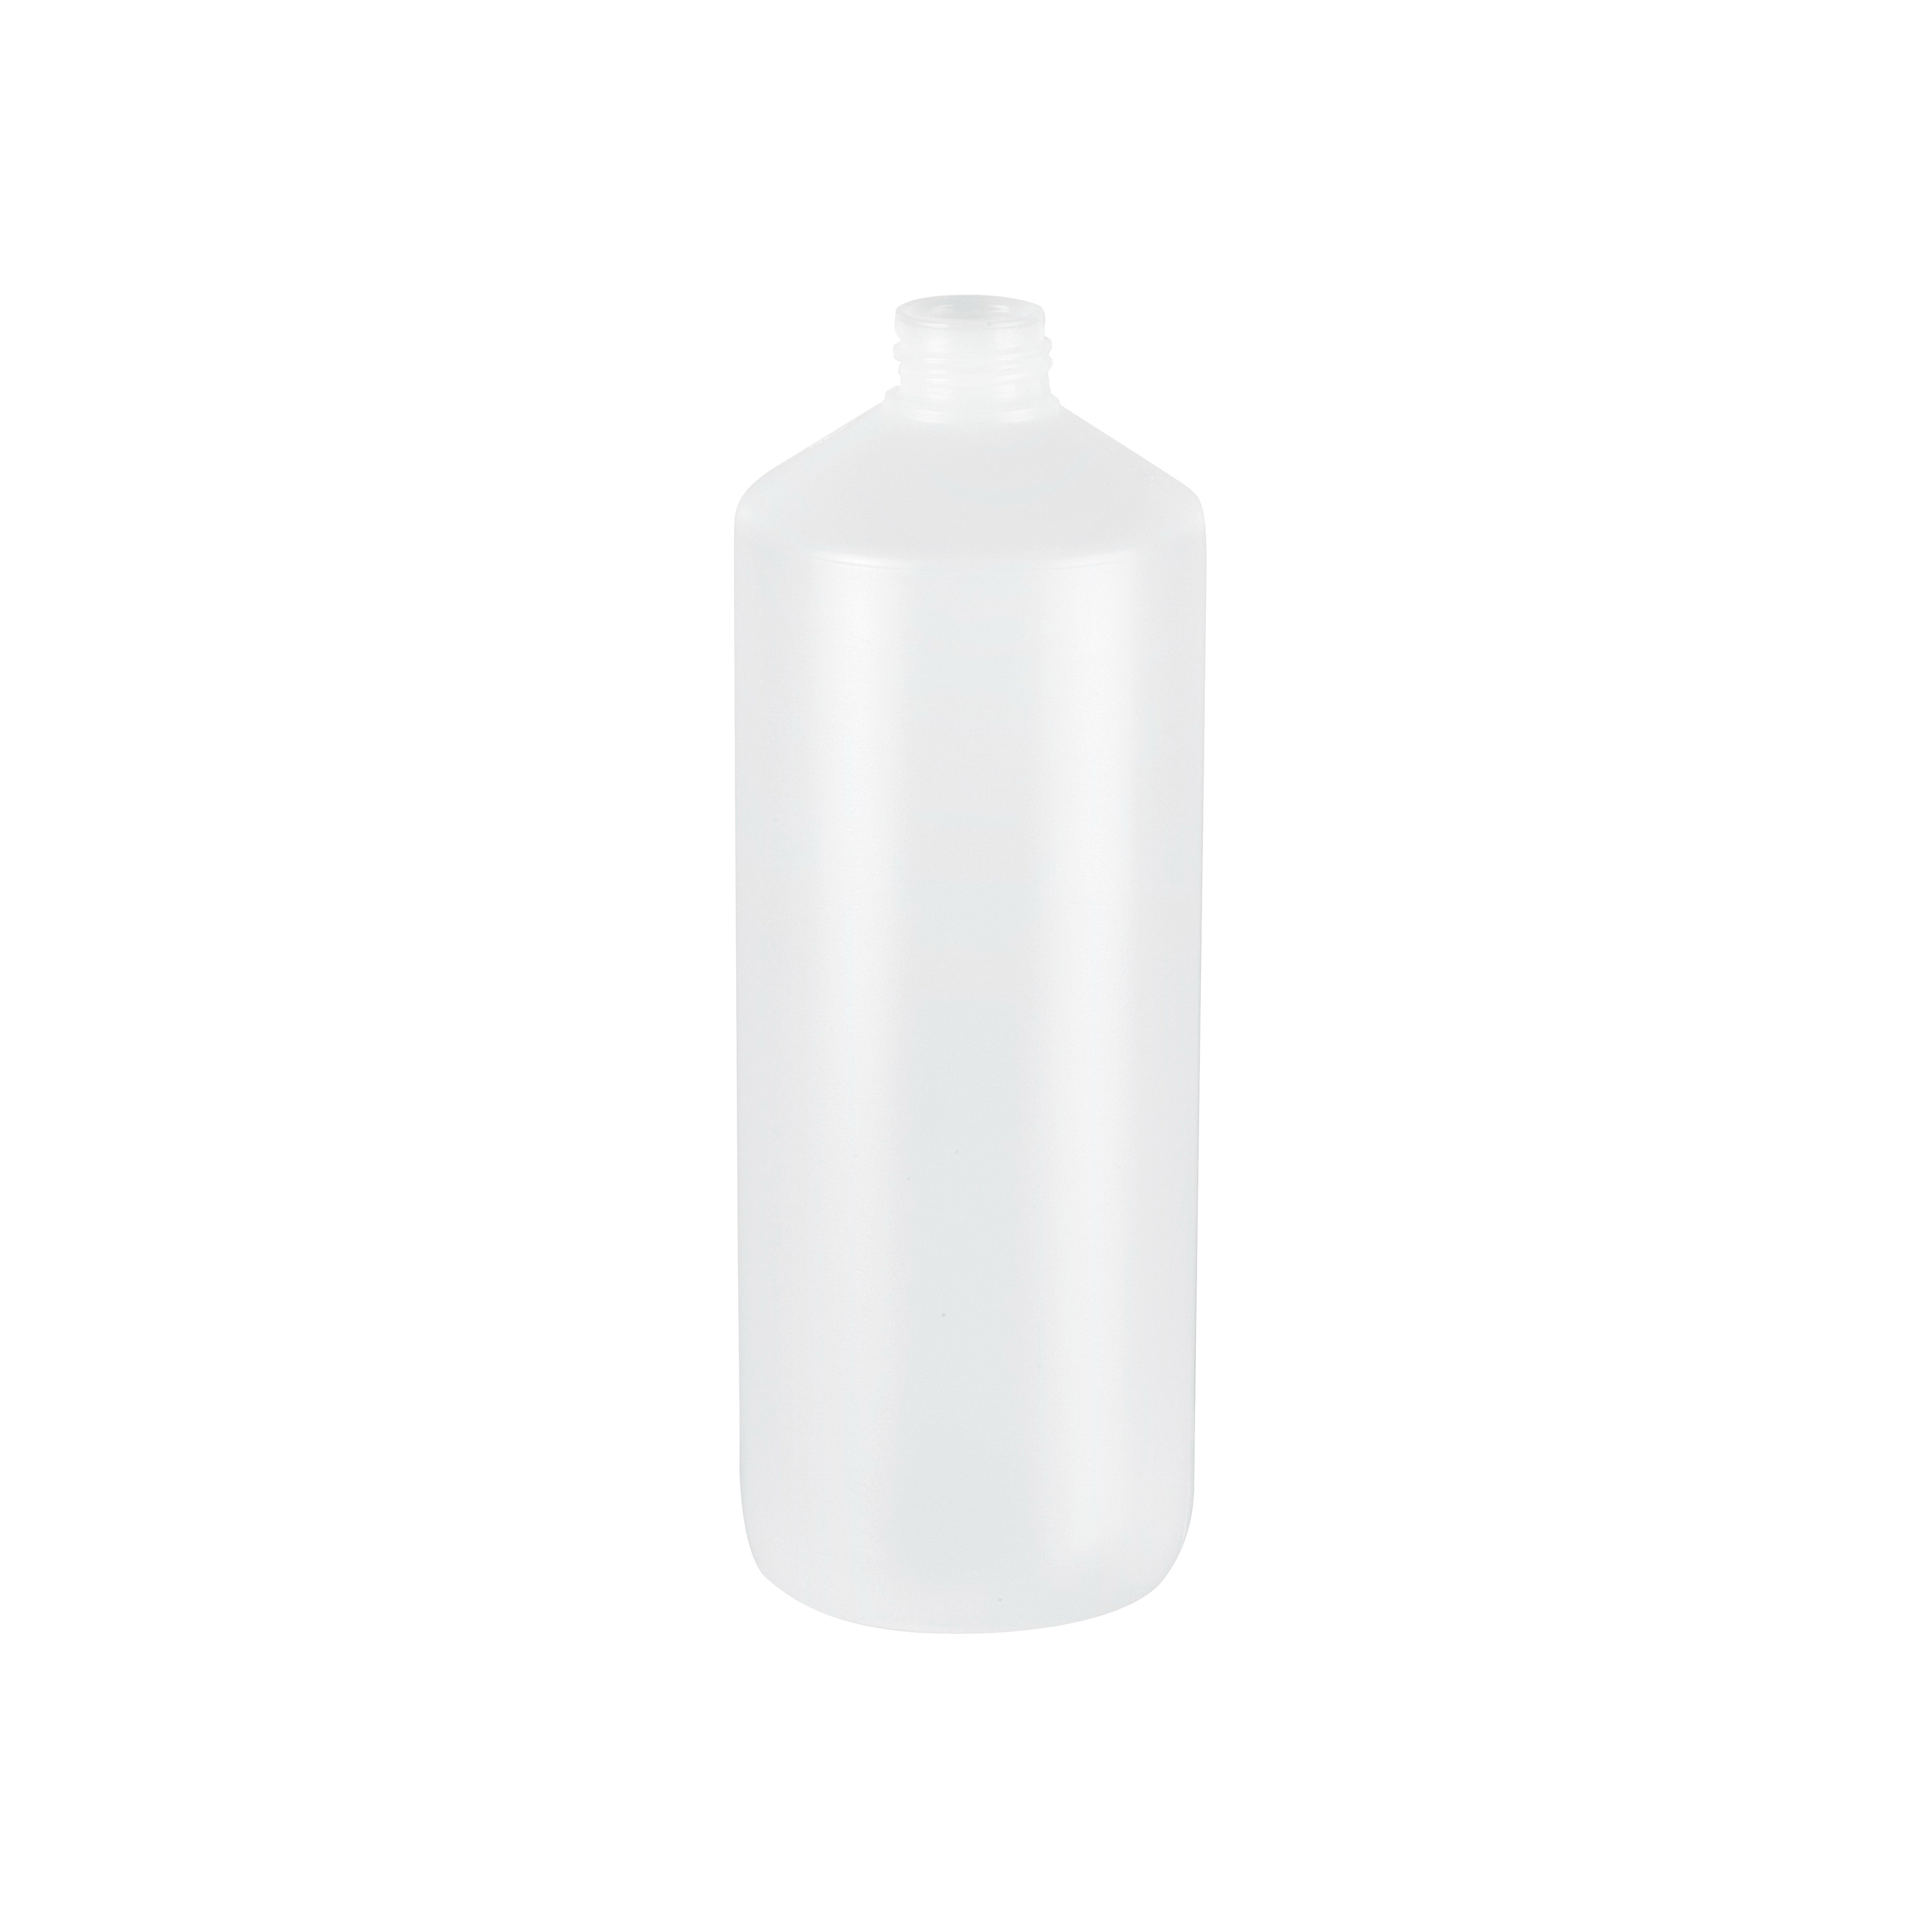 GROHE 48169000 Soap Container, 0.4 L, 11 in OAL, Import